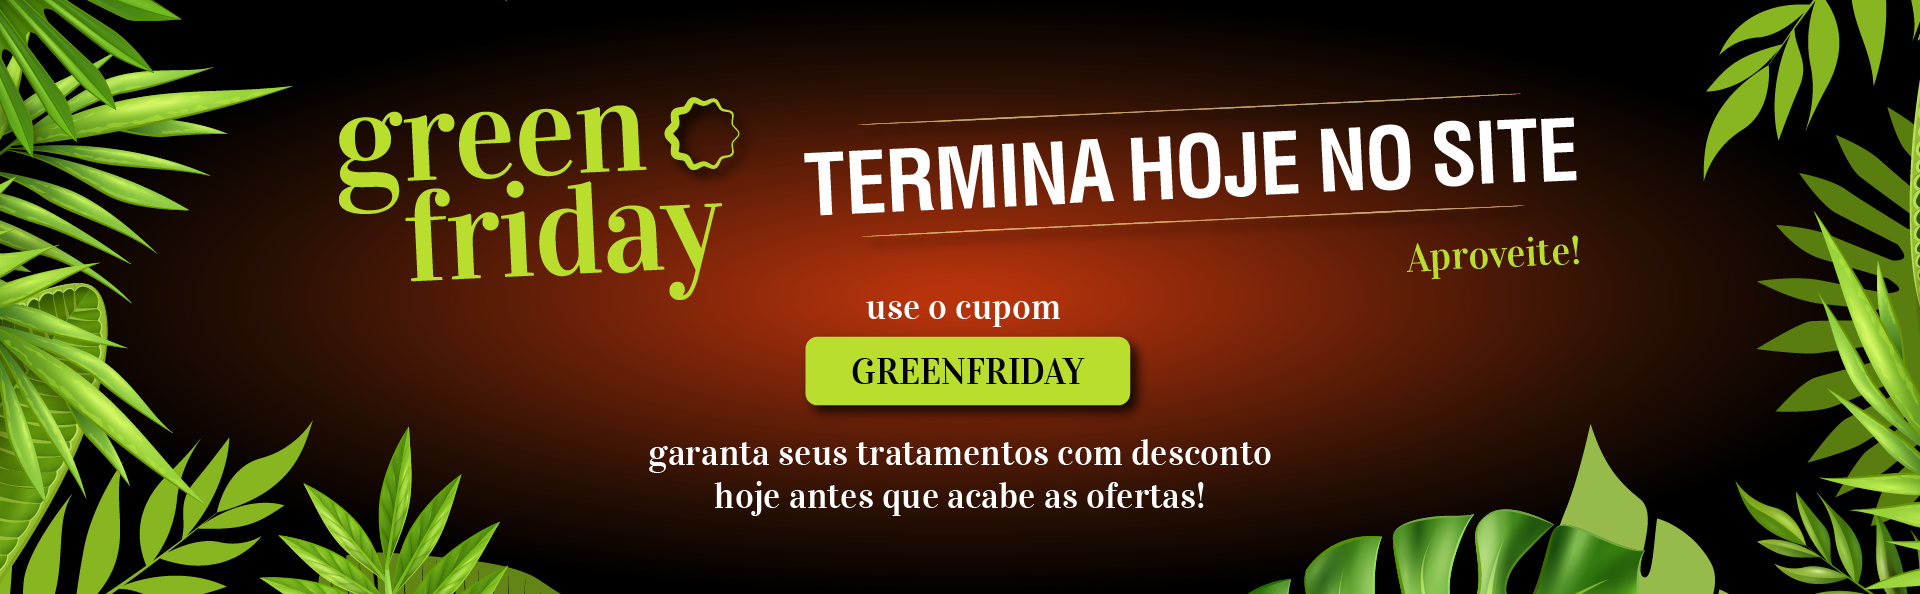 GREEN FRIDAY SITE